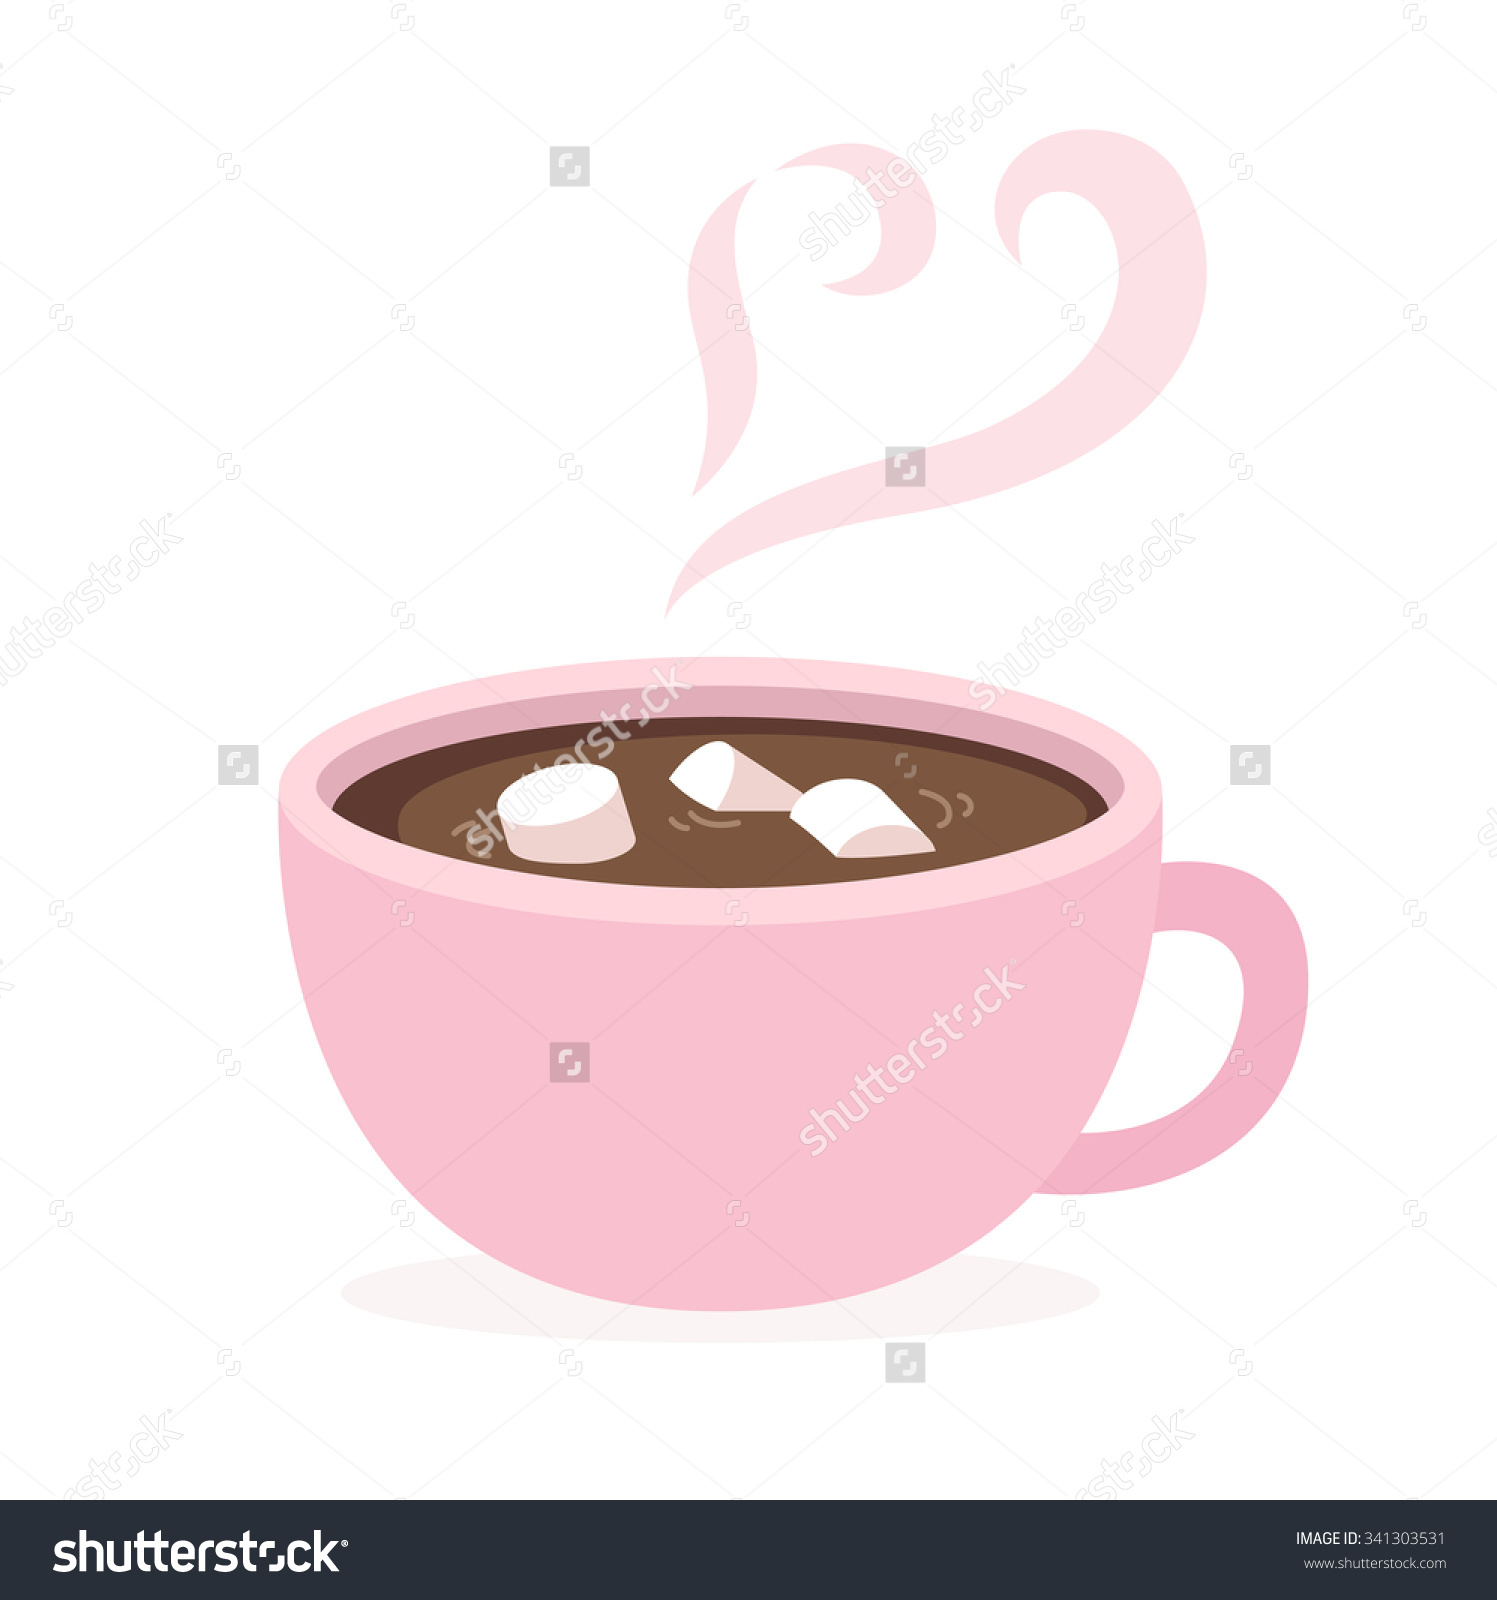 Hot chocolate with steam clipart.